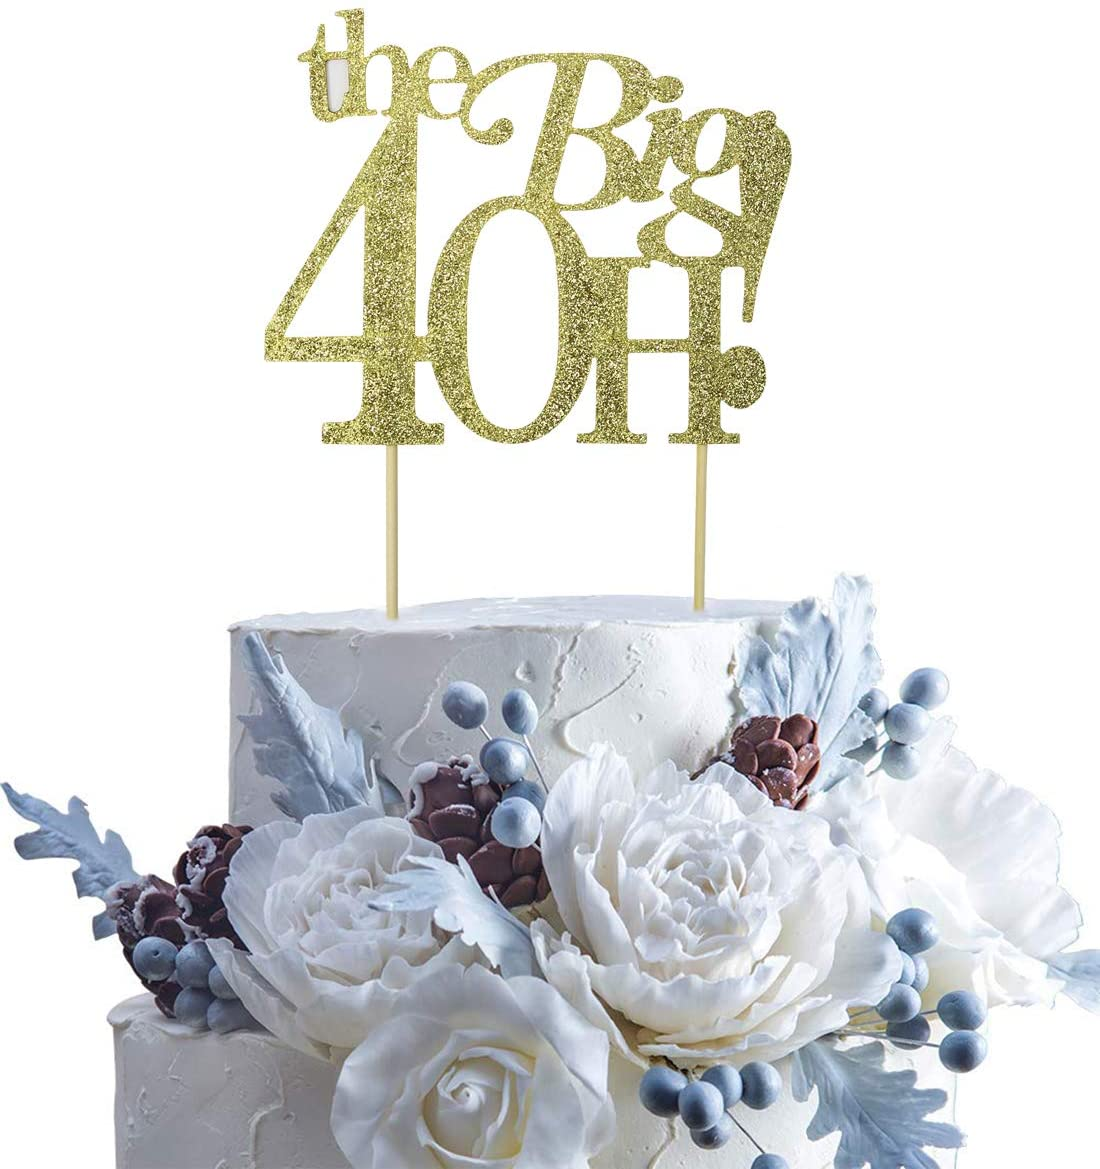 Guoguoxia Gold Glitter The Big 40H Cake Topper 40 & Fabulous Cake Topper - 40th Birthday Party Decoration Sign - Adult Birthday Party Supplies